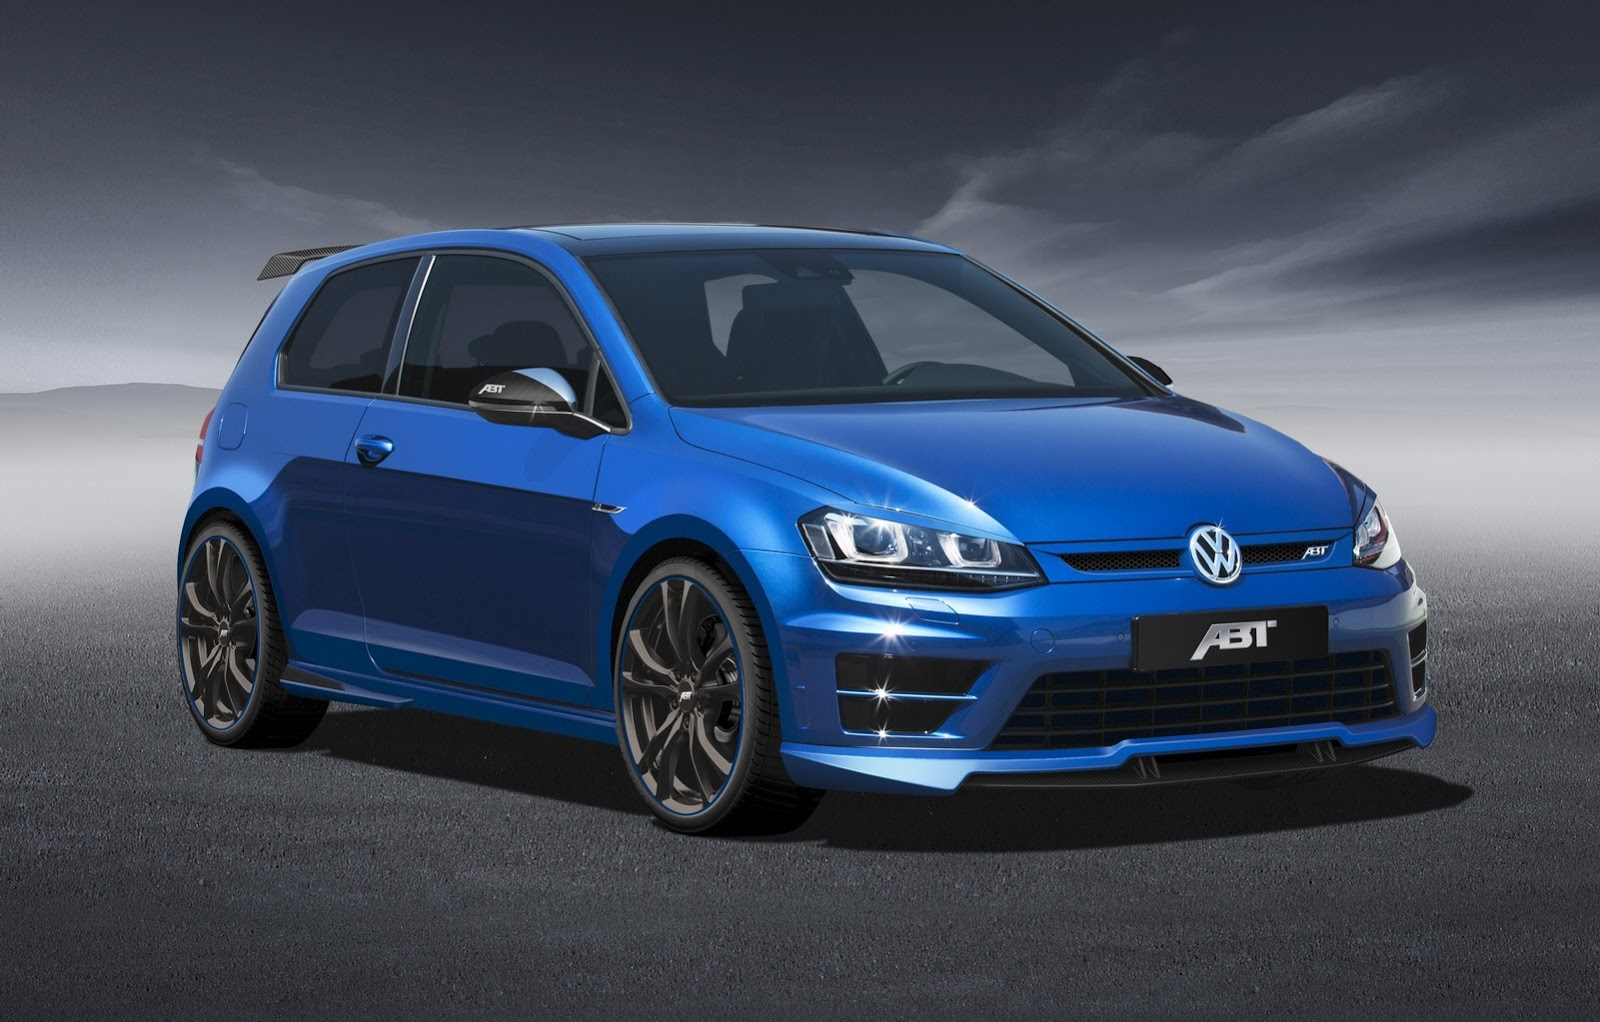 abt vw golf r mk7 1 vw tuning mag. Black Bedroom Furniture Sets. Home Design Ideas